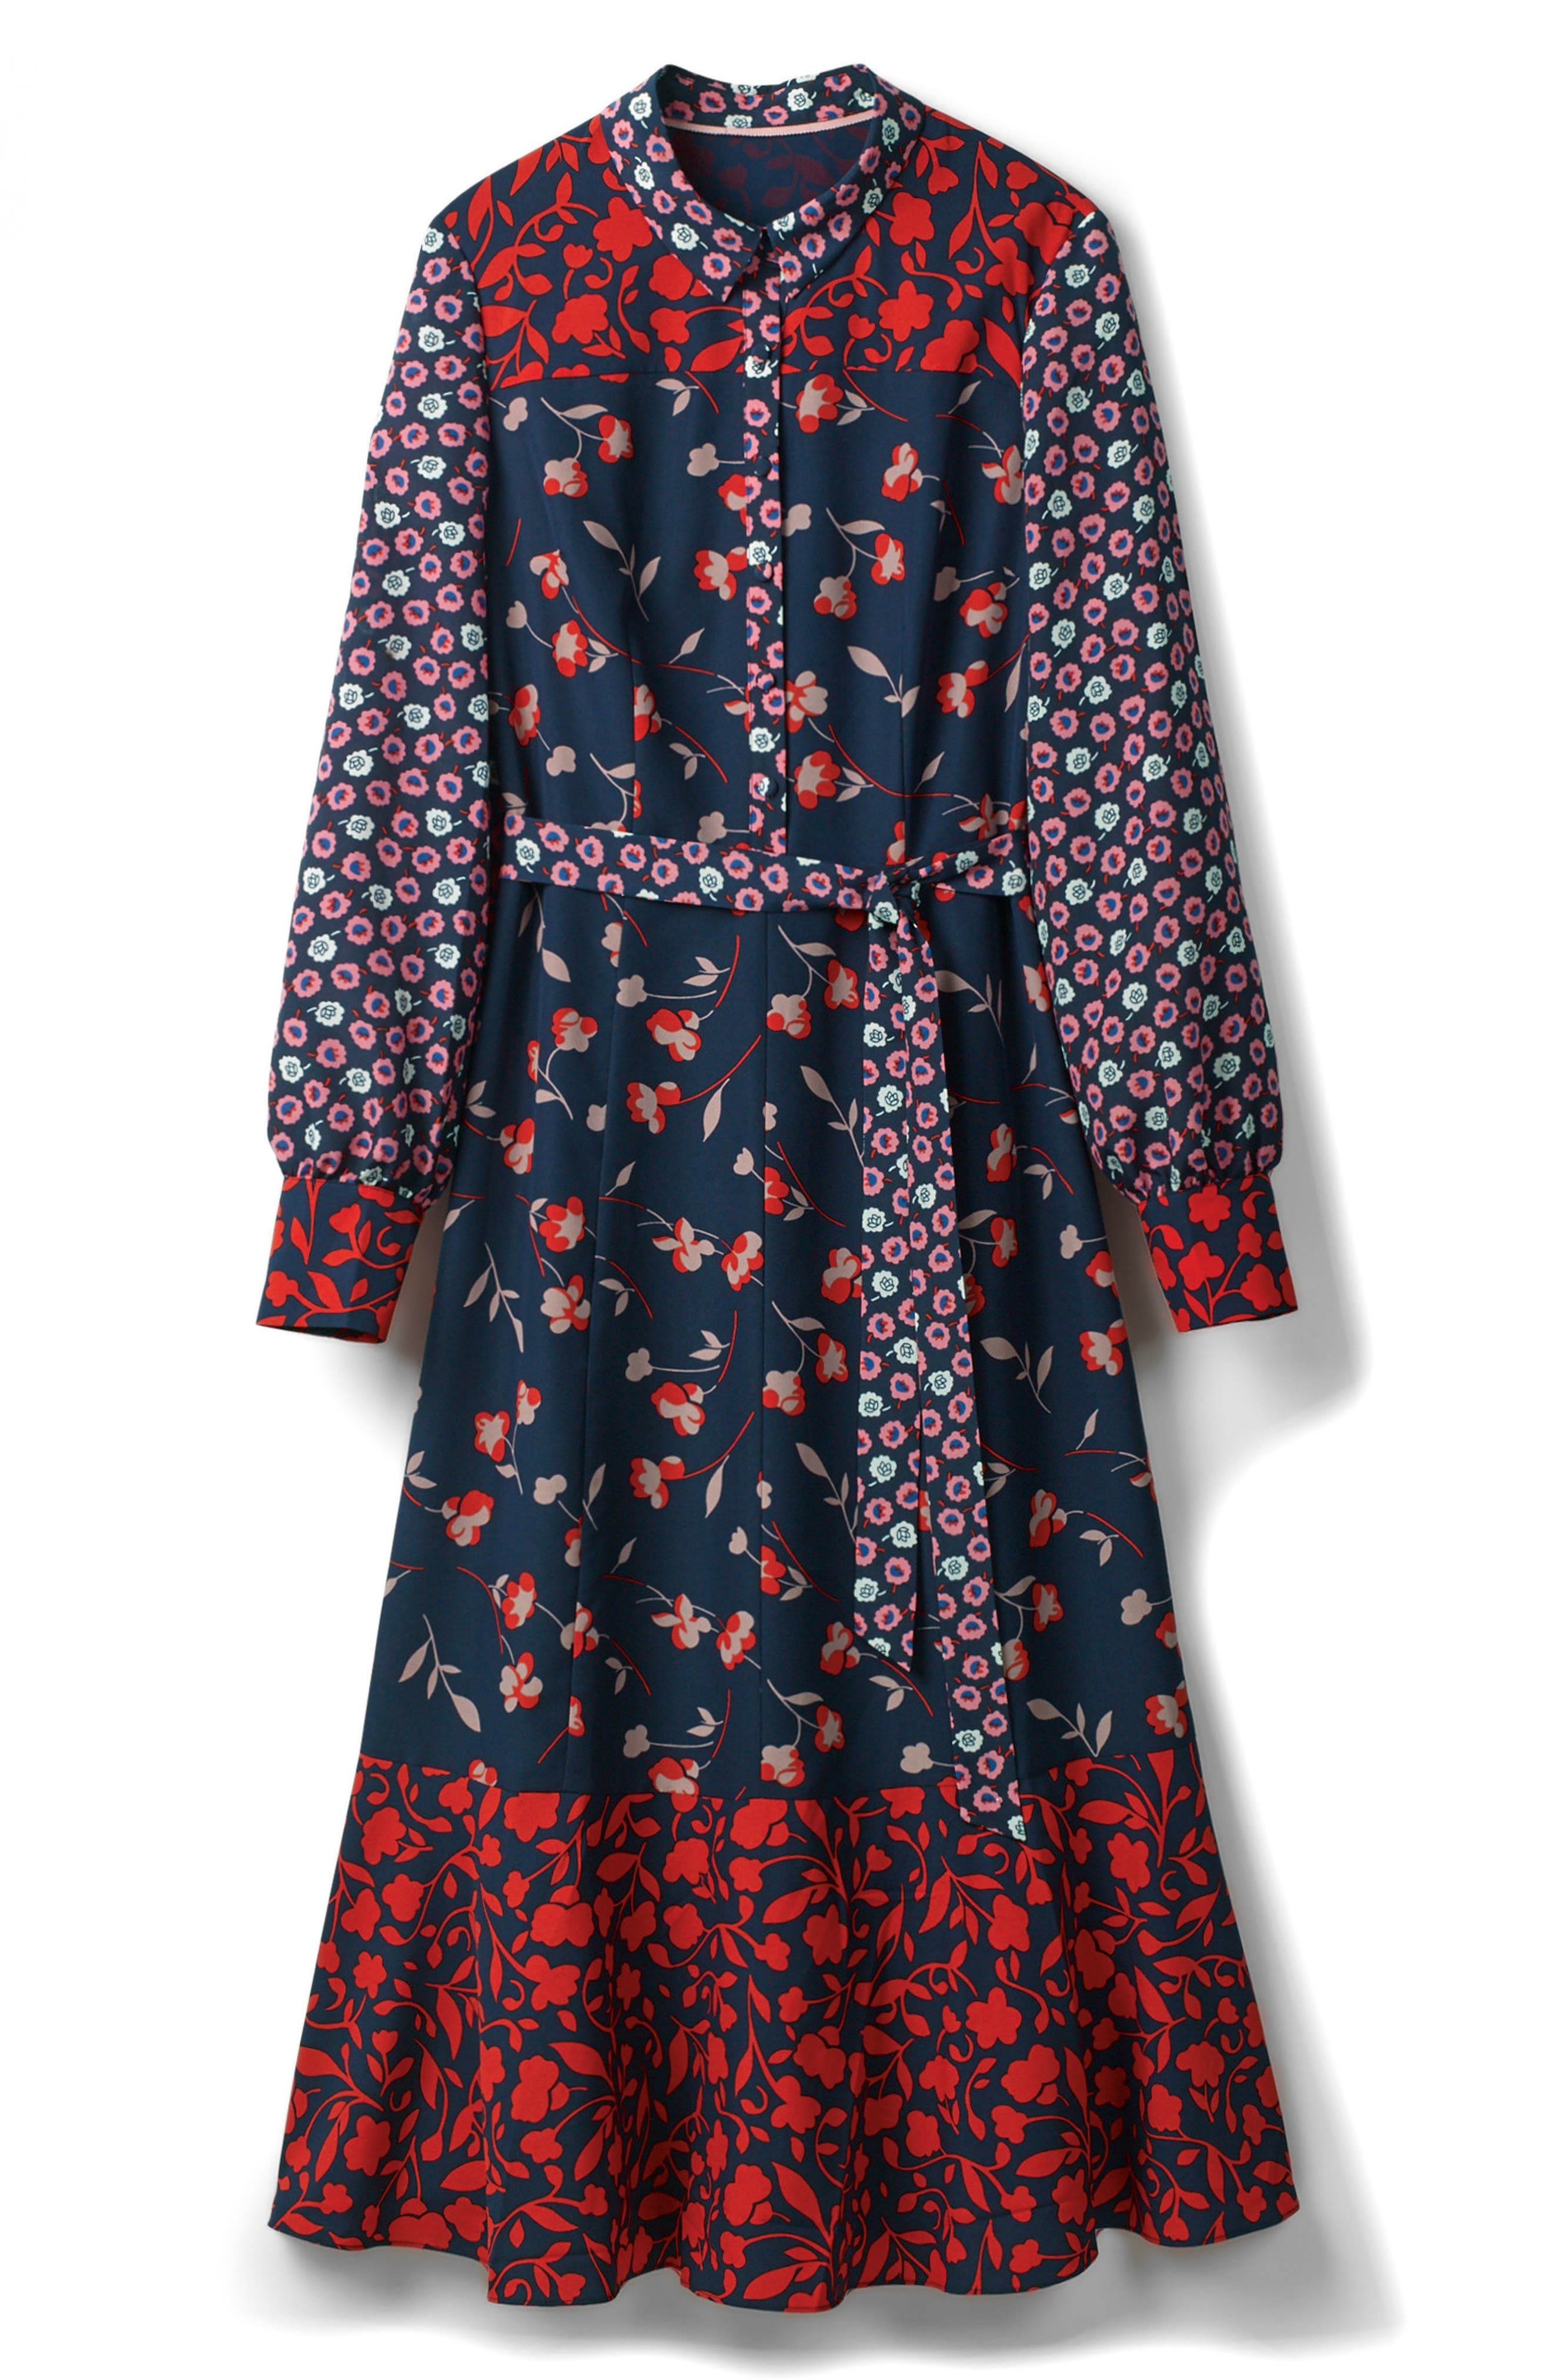 Mixed Print Midi Shirtdress,                             Main thumbnail 1, color,                             Navy/ Wildflower Sma